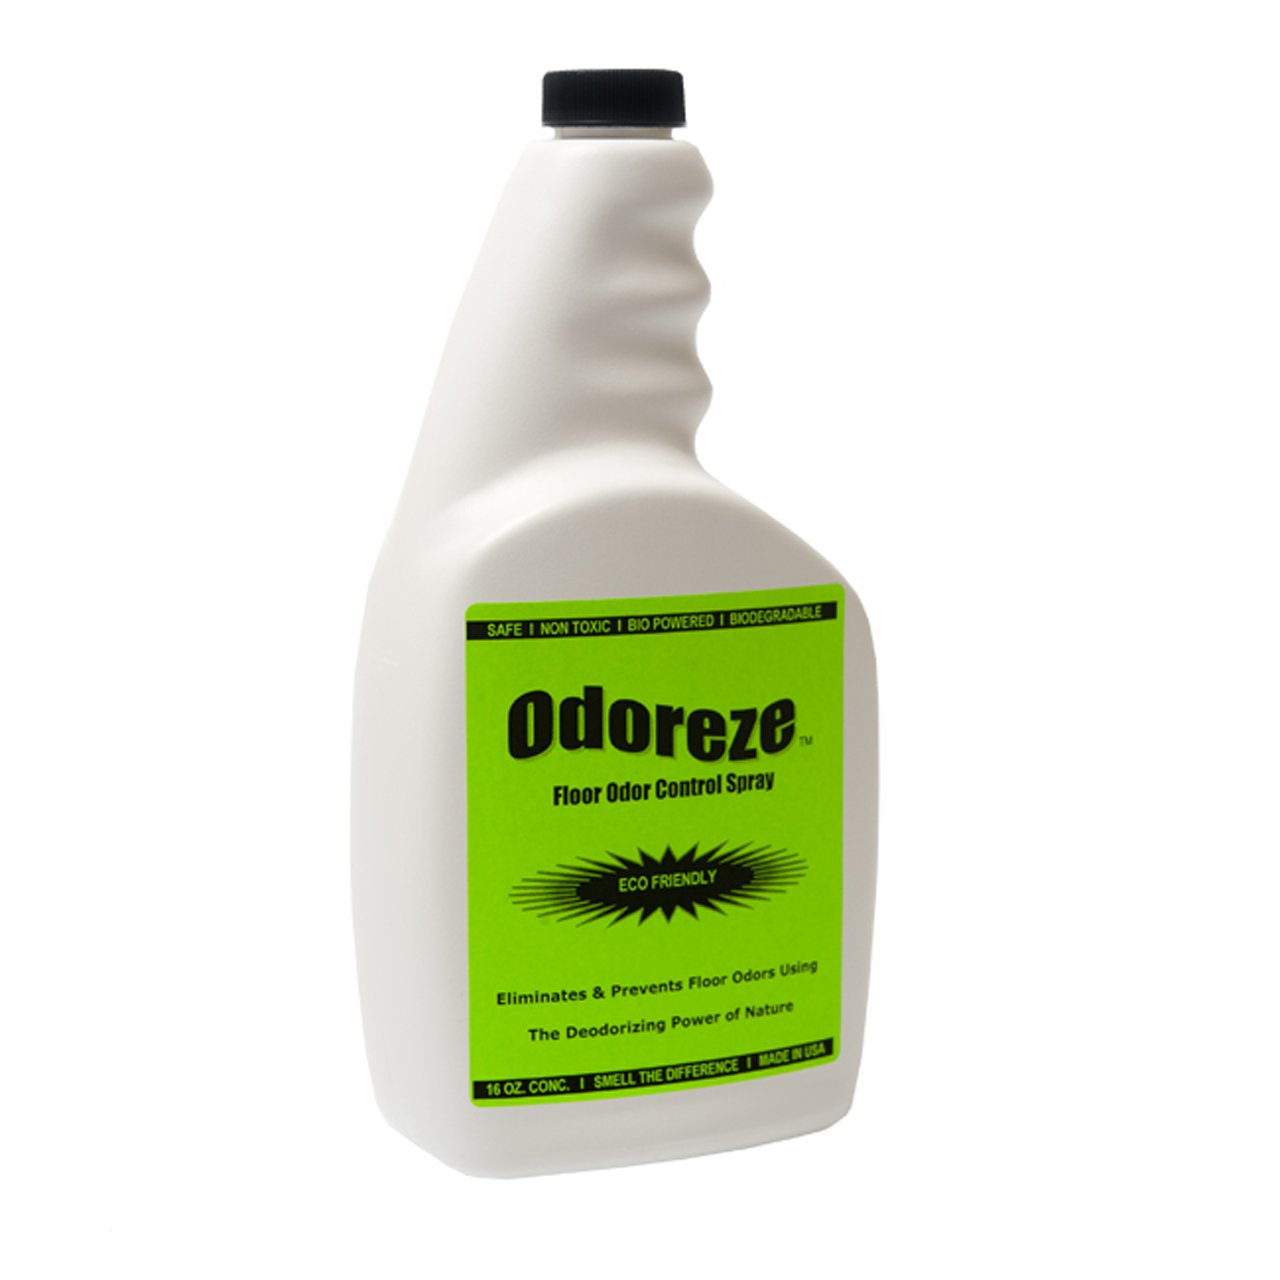 ODOREZE Natural Floor/Grout Cleaner & Deodorizing Spray: Makes 64 Gallons to Clean Stink Fast